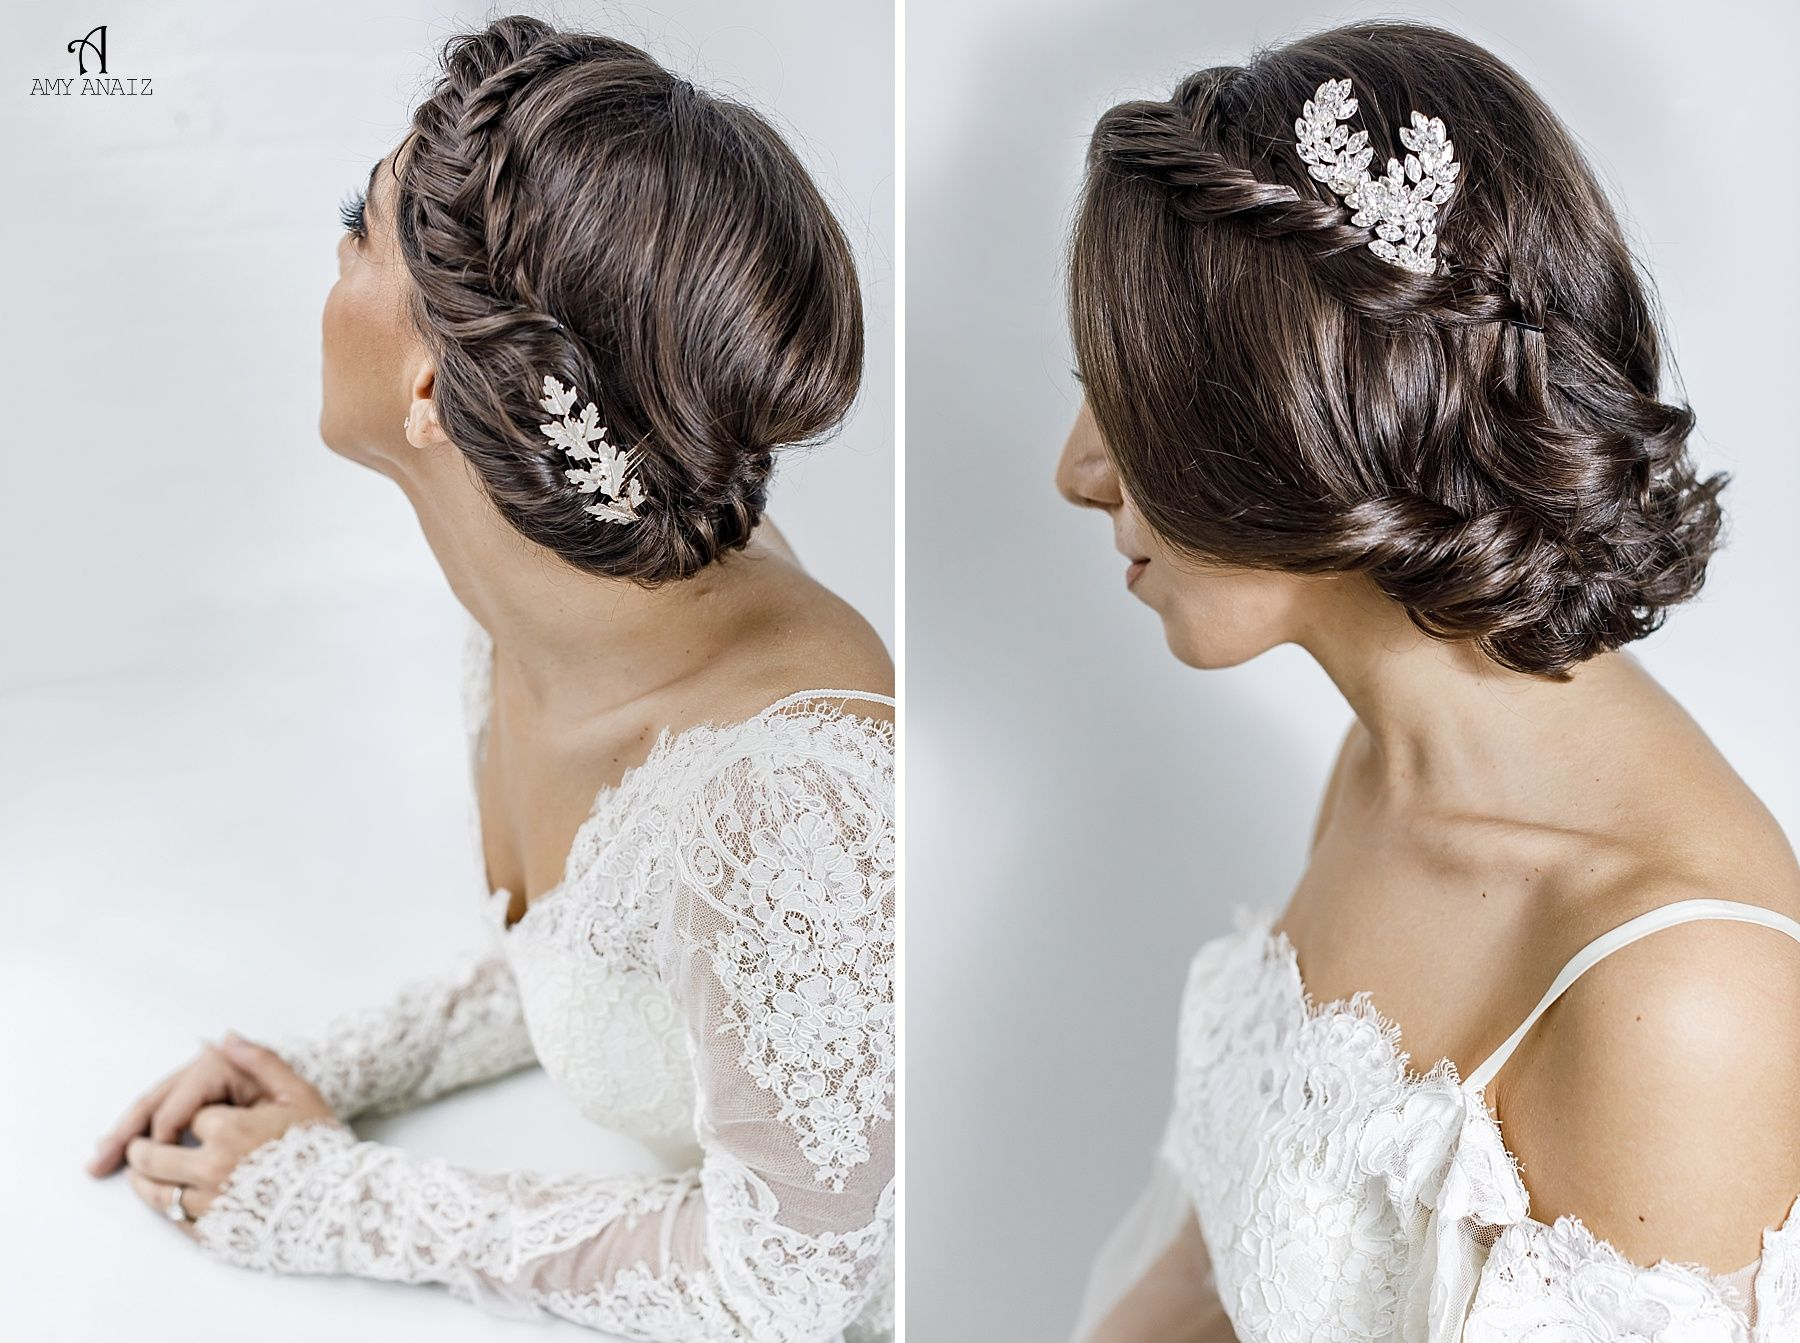 Short Hair Wedding Style Inspiration :: Amy Anaiz Photography ...